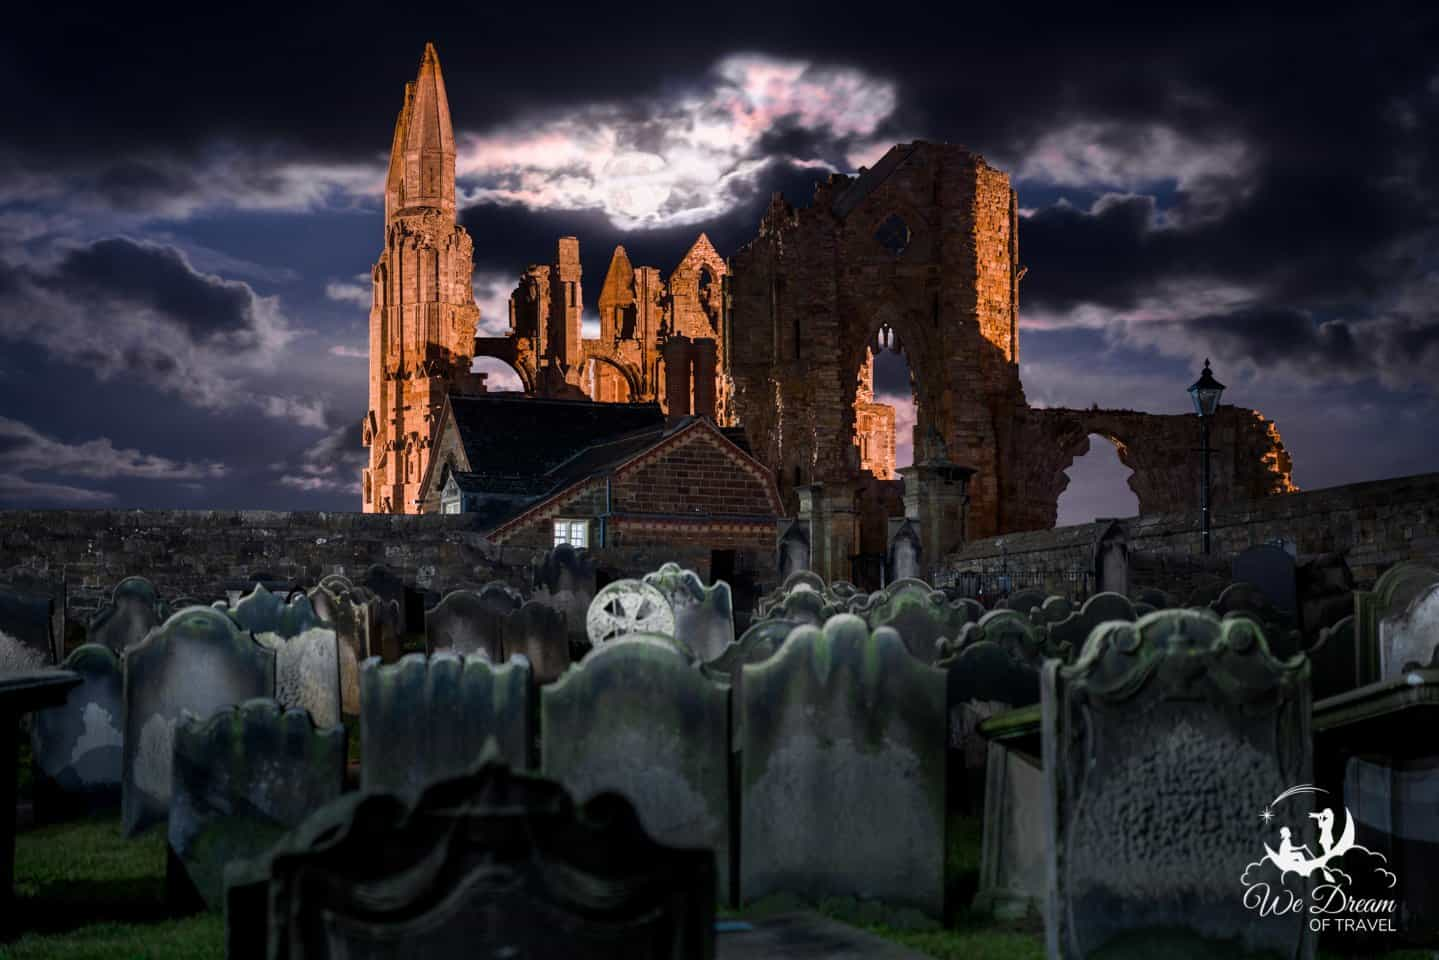 Night photography of Whitby Abbey and St Mary's Church graveyard under a full moon create a spooky scene.